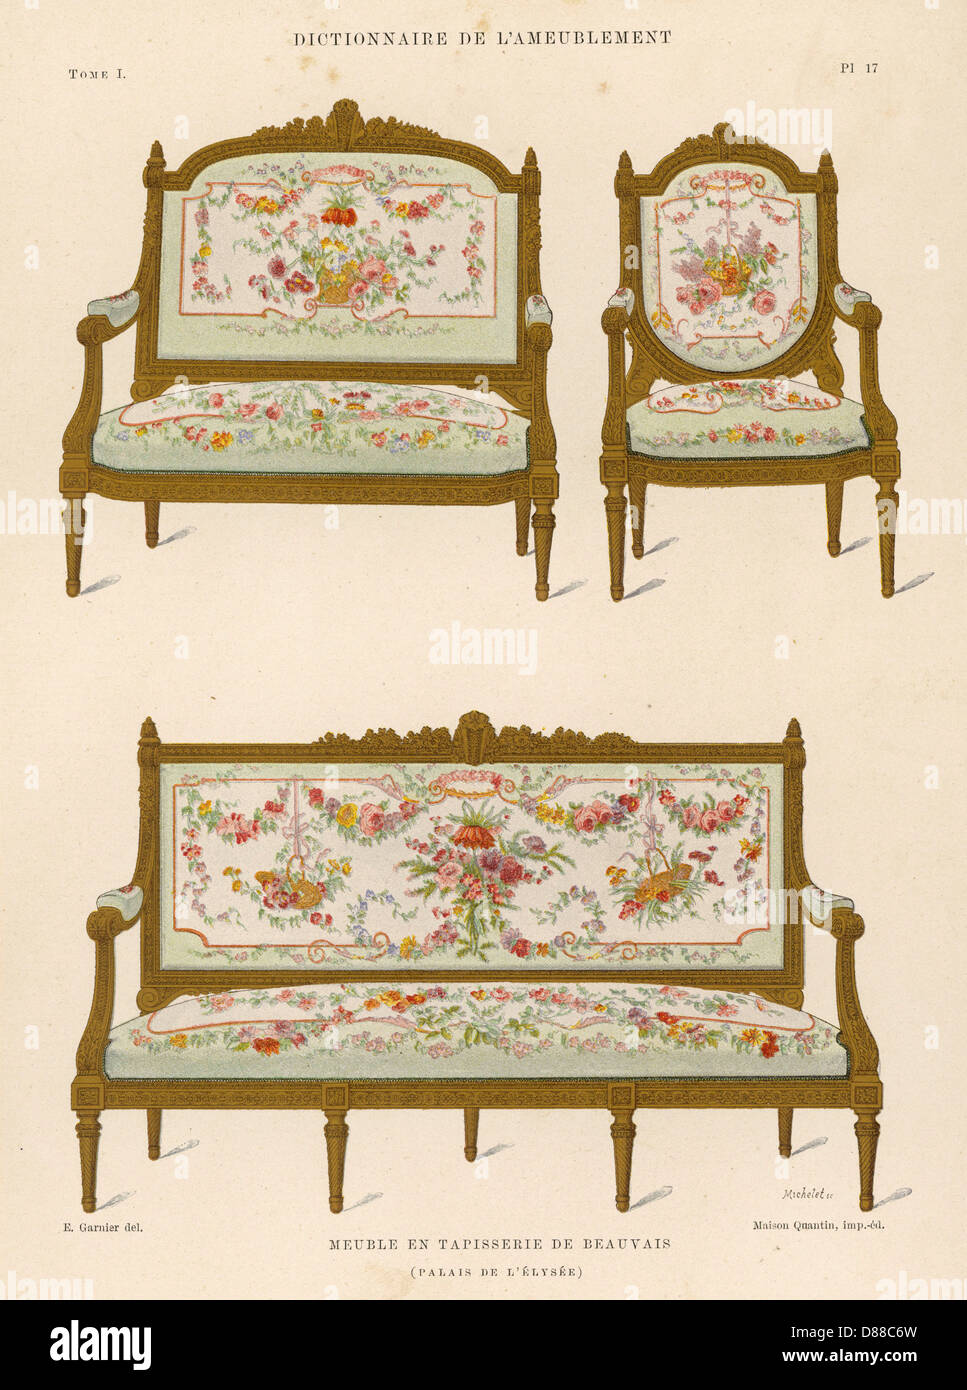 Settee And Chairs - Stock Image